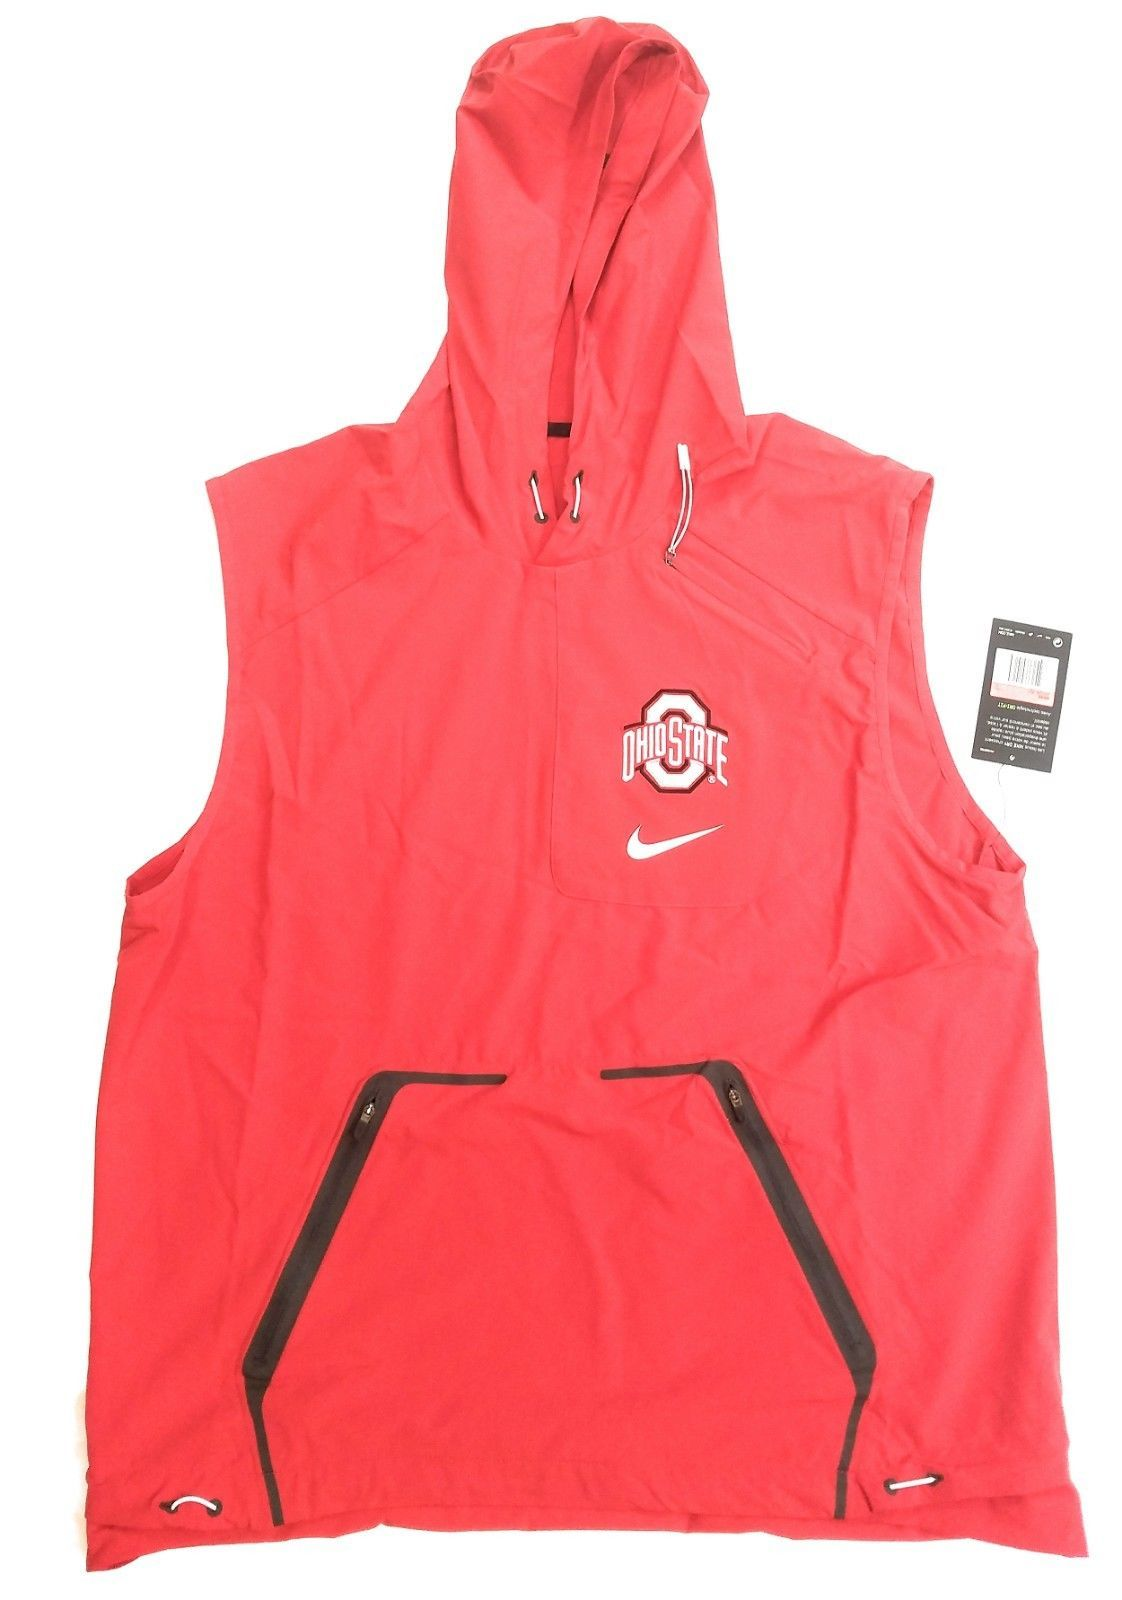 Nike Ohio State Buckeyes Fly Jet Vests Spring Summer Fall Wear